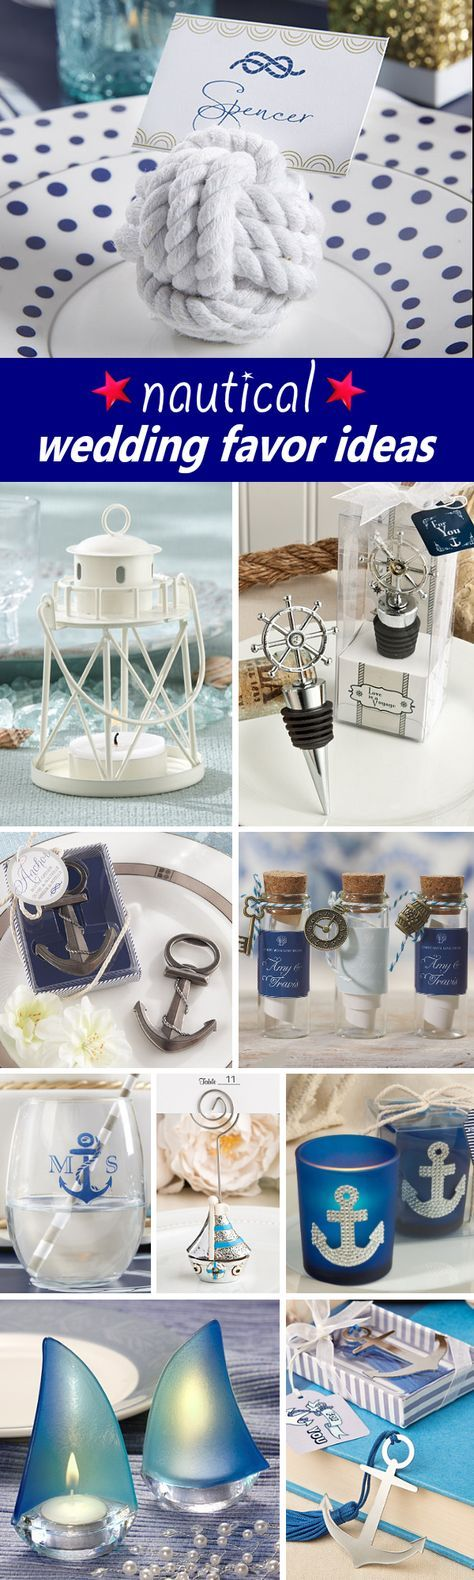 50 Nautical Wedding Favors Your Guests Will Love Nautical Wedding Favors Nautical Wedding Theme Nautical Wedding